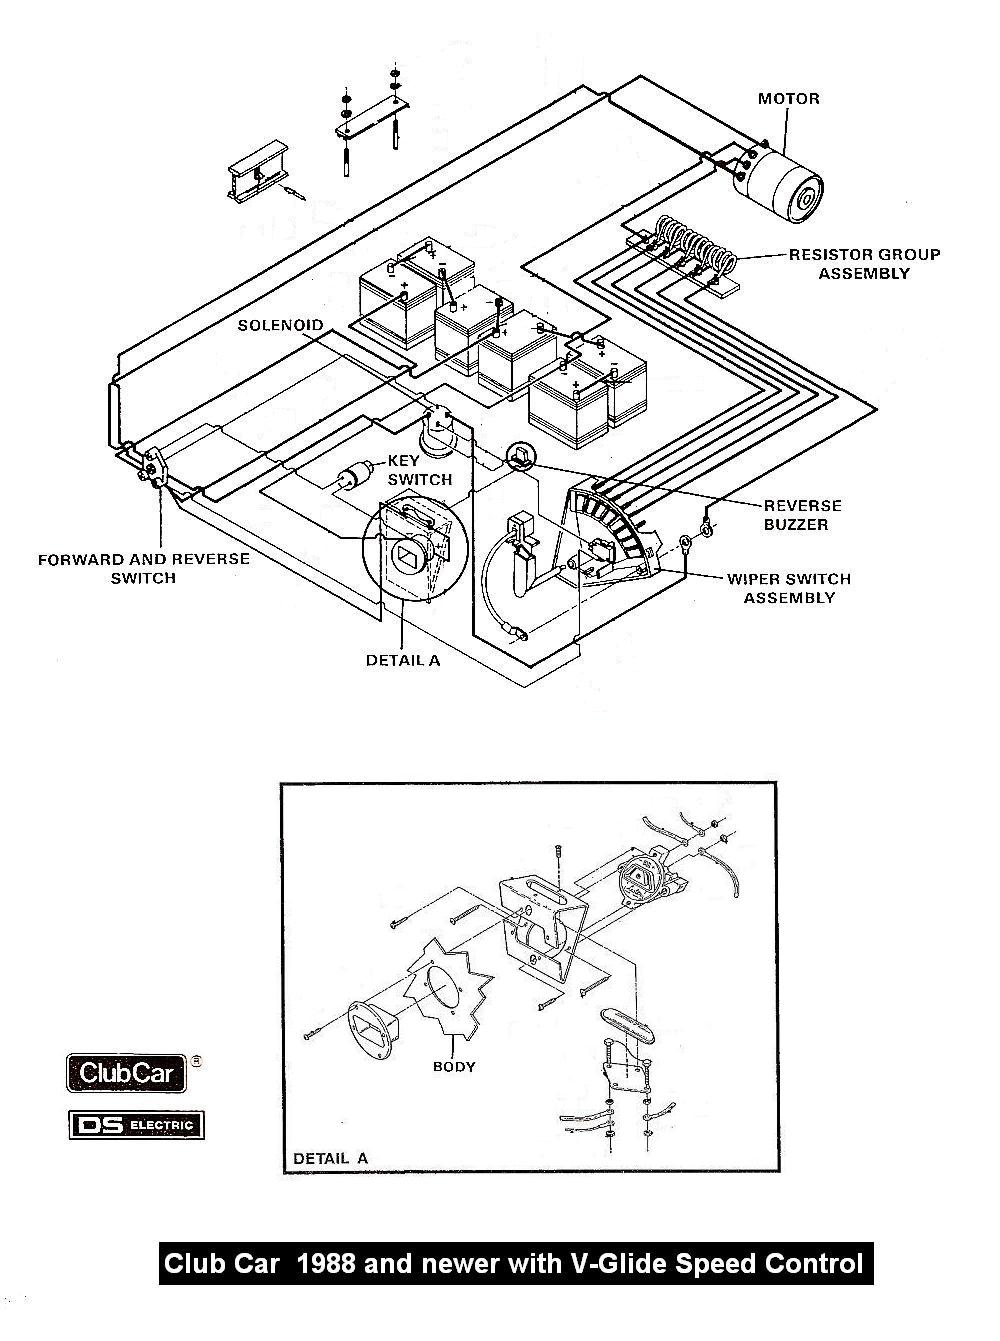 Toyota land cruiser station wagon wiring diagram in addition Car Design Schematics further Deutz Engine BFM 1012 1013 besides T11116038 Wiring diagram simplicity legacy model besides Sony Car Stereo Wiring Diagram. on electrical wiring diagrams for cars